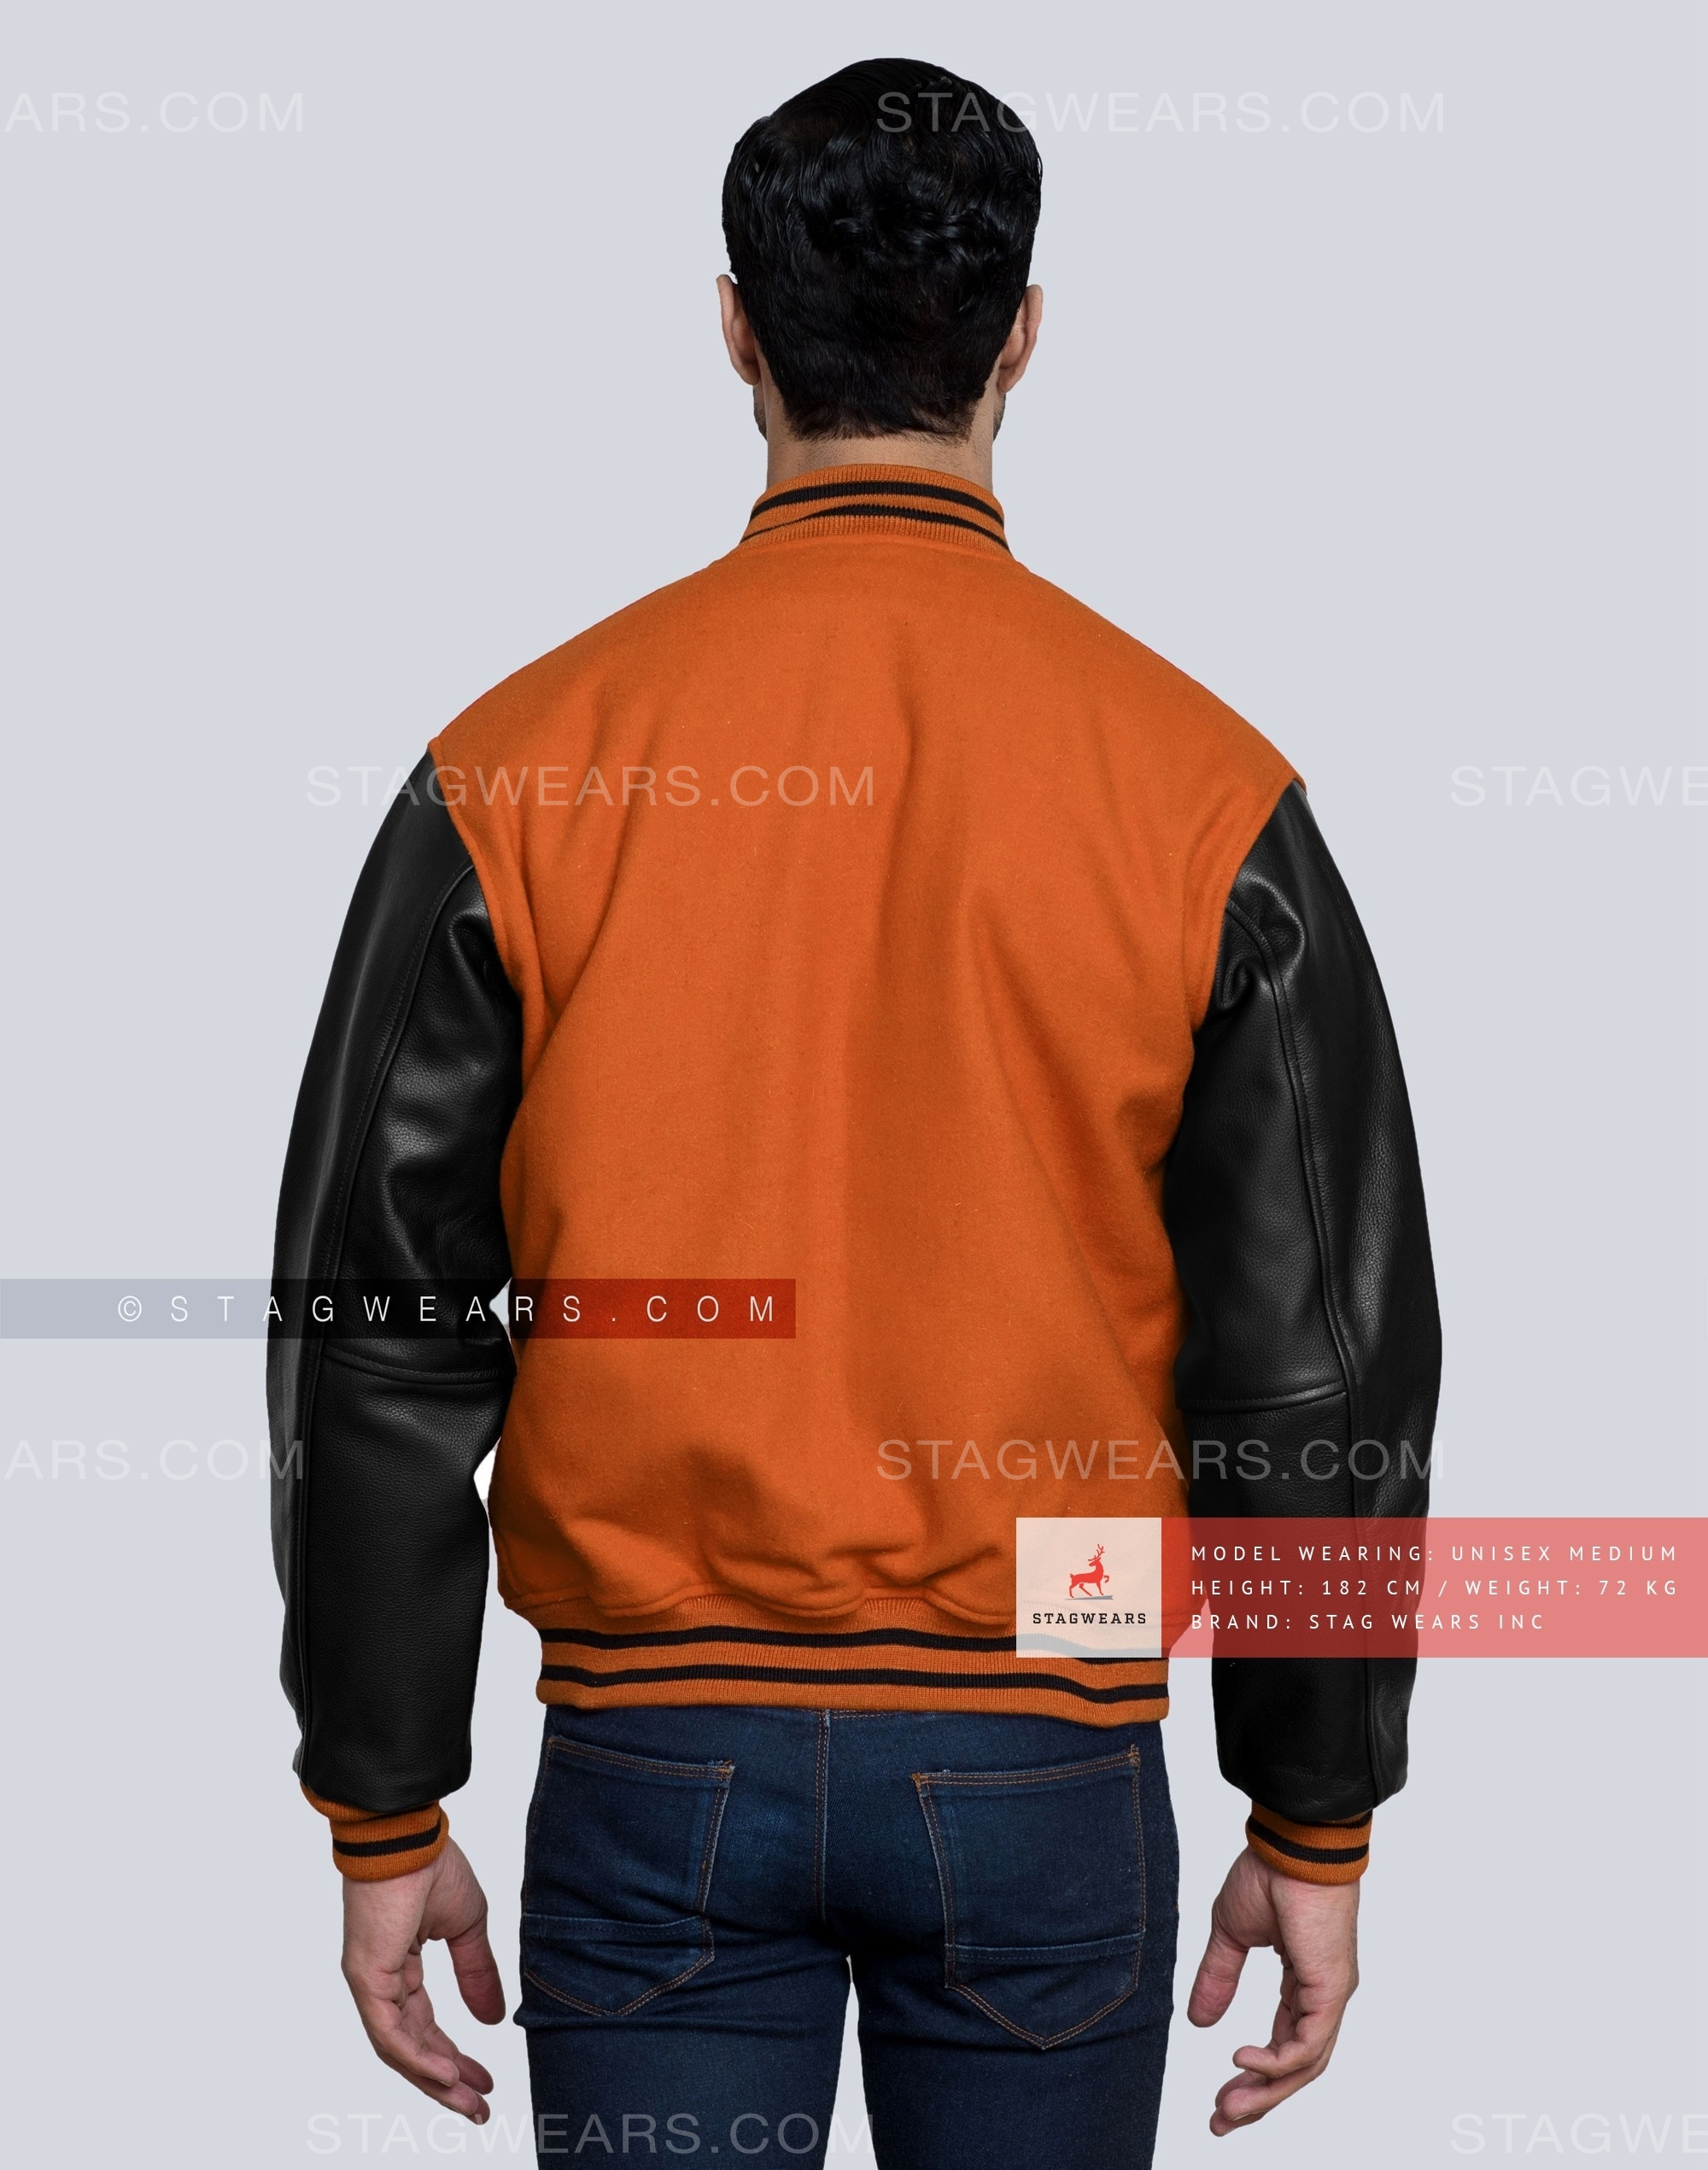 7a17c67e6b5 College Varsity Jacket in Orange and Black - Add It to Your Wardrobe ...